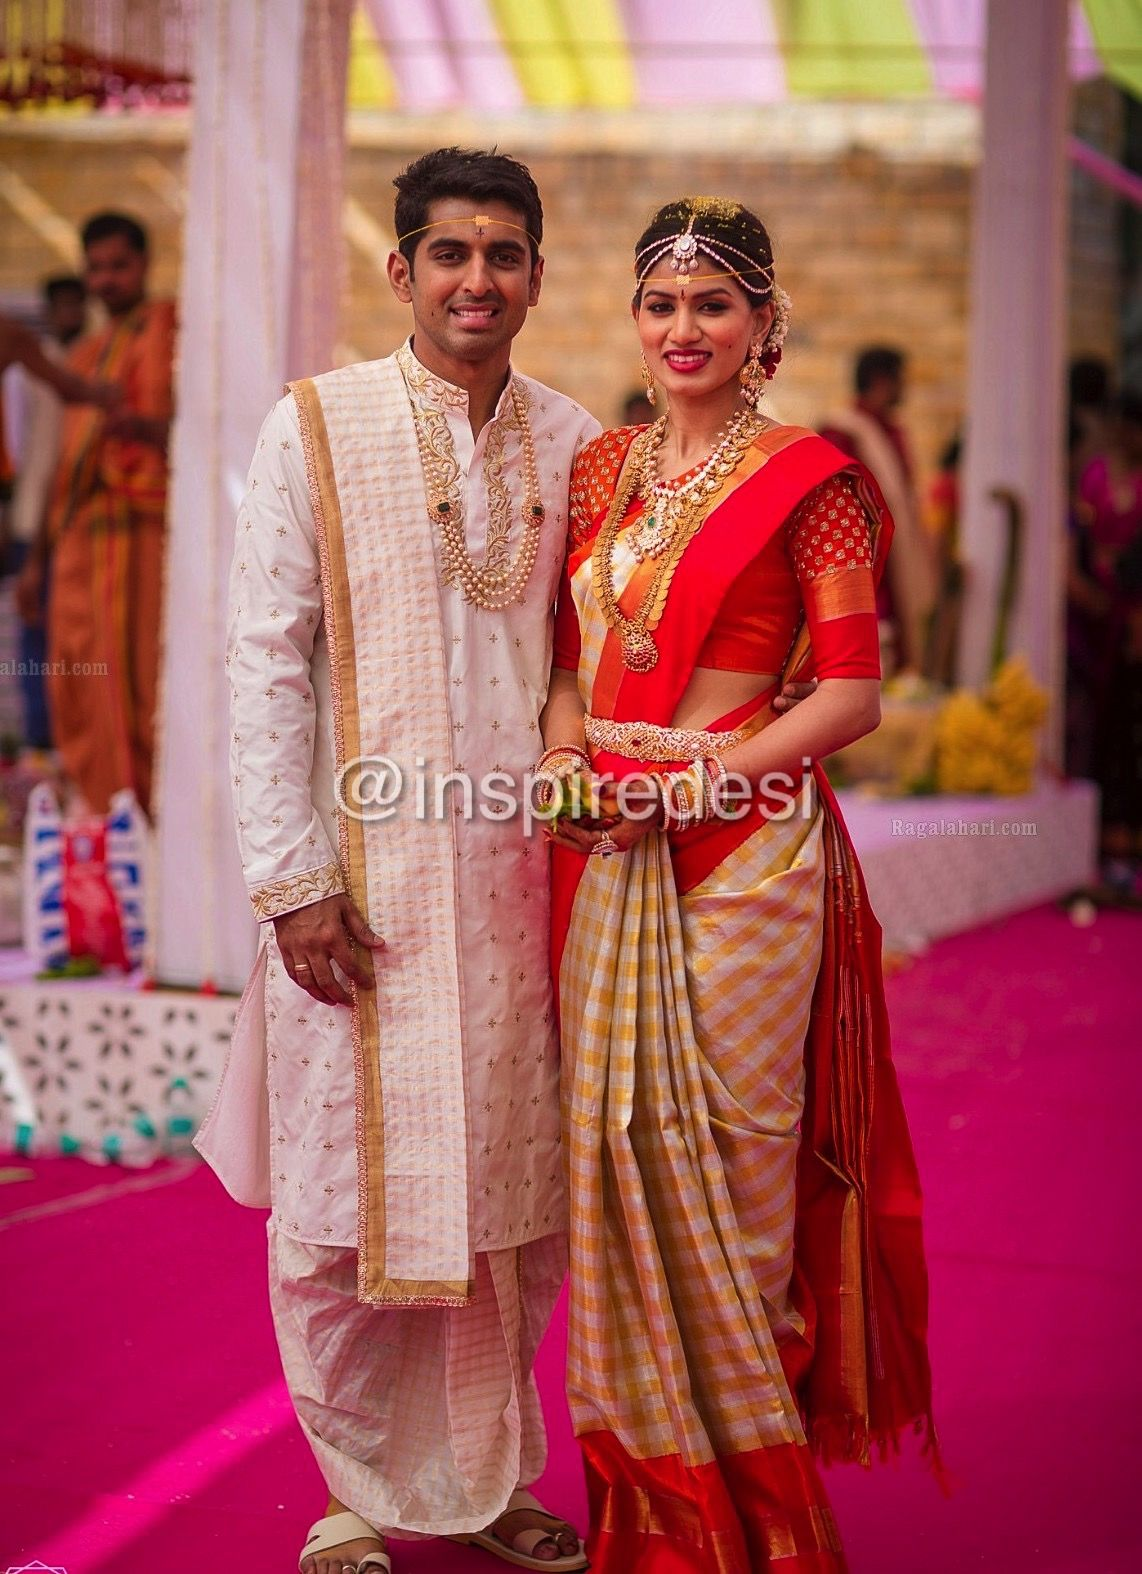 south indian bride and groom woman clothing in 2019